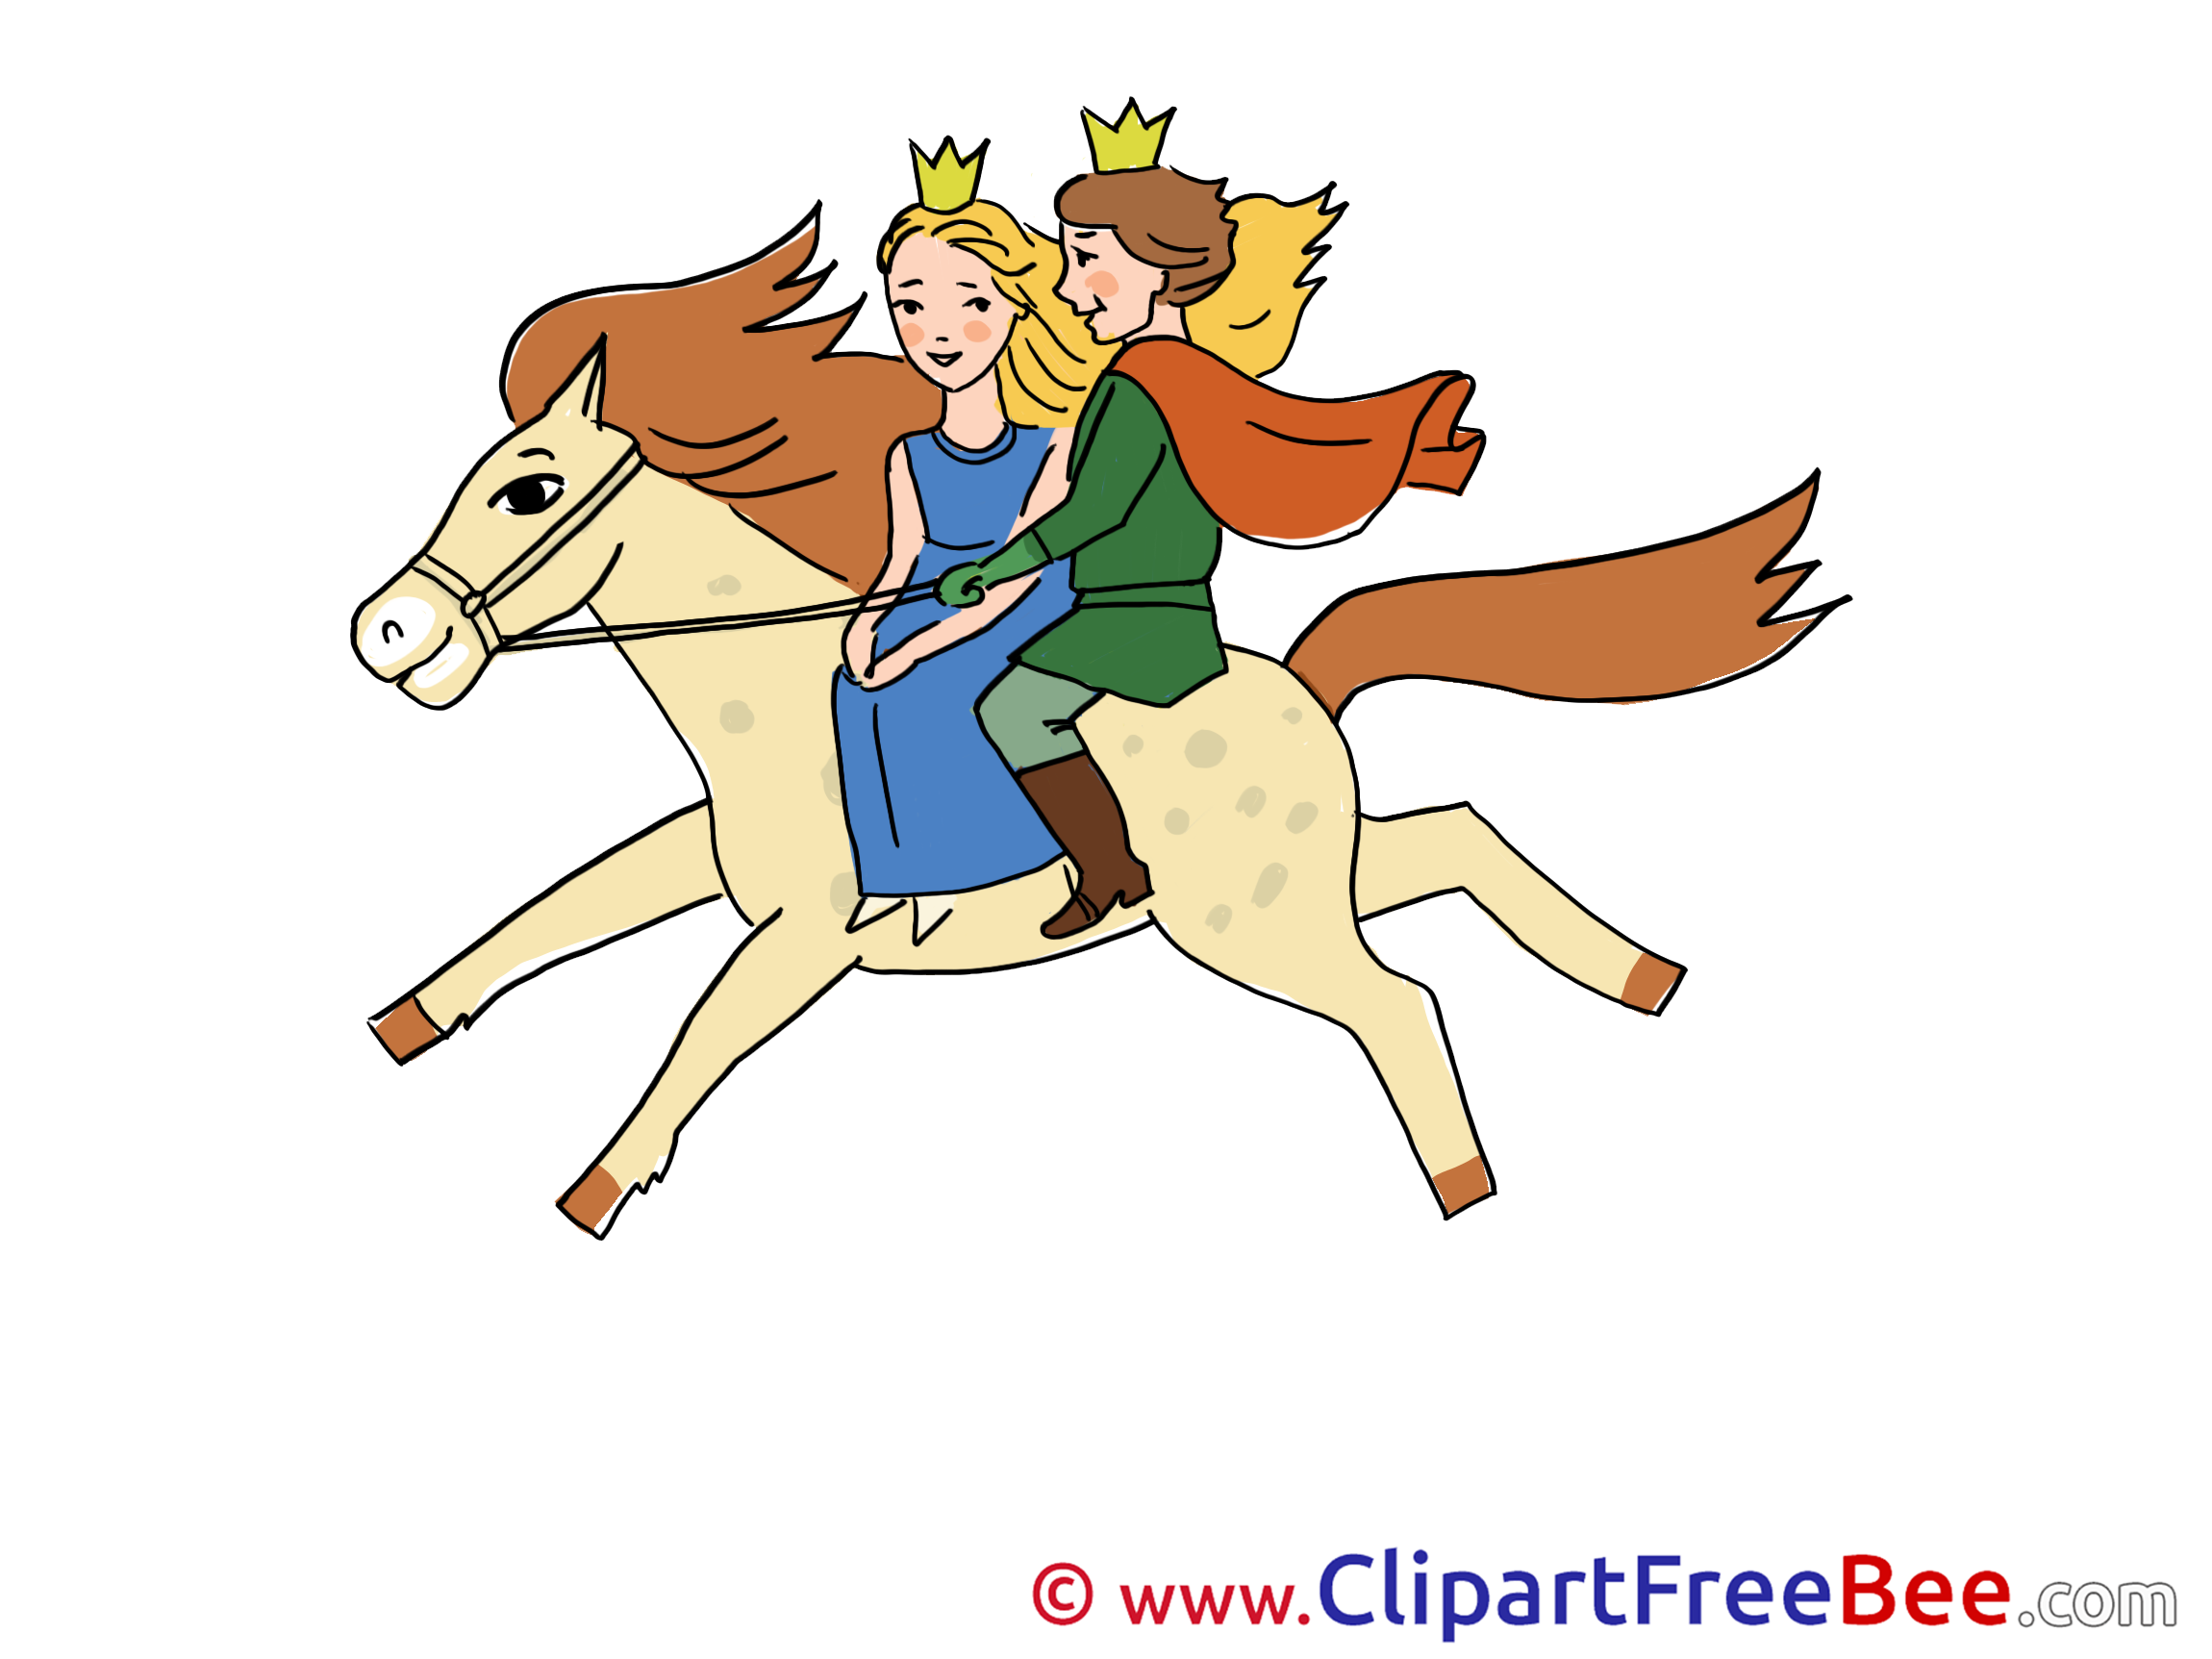 Horse Riding clipart prince Prince Images Riding  Tale